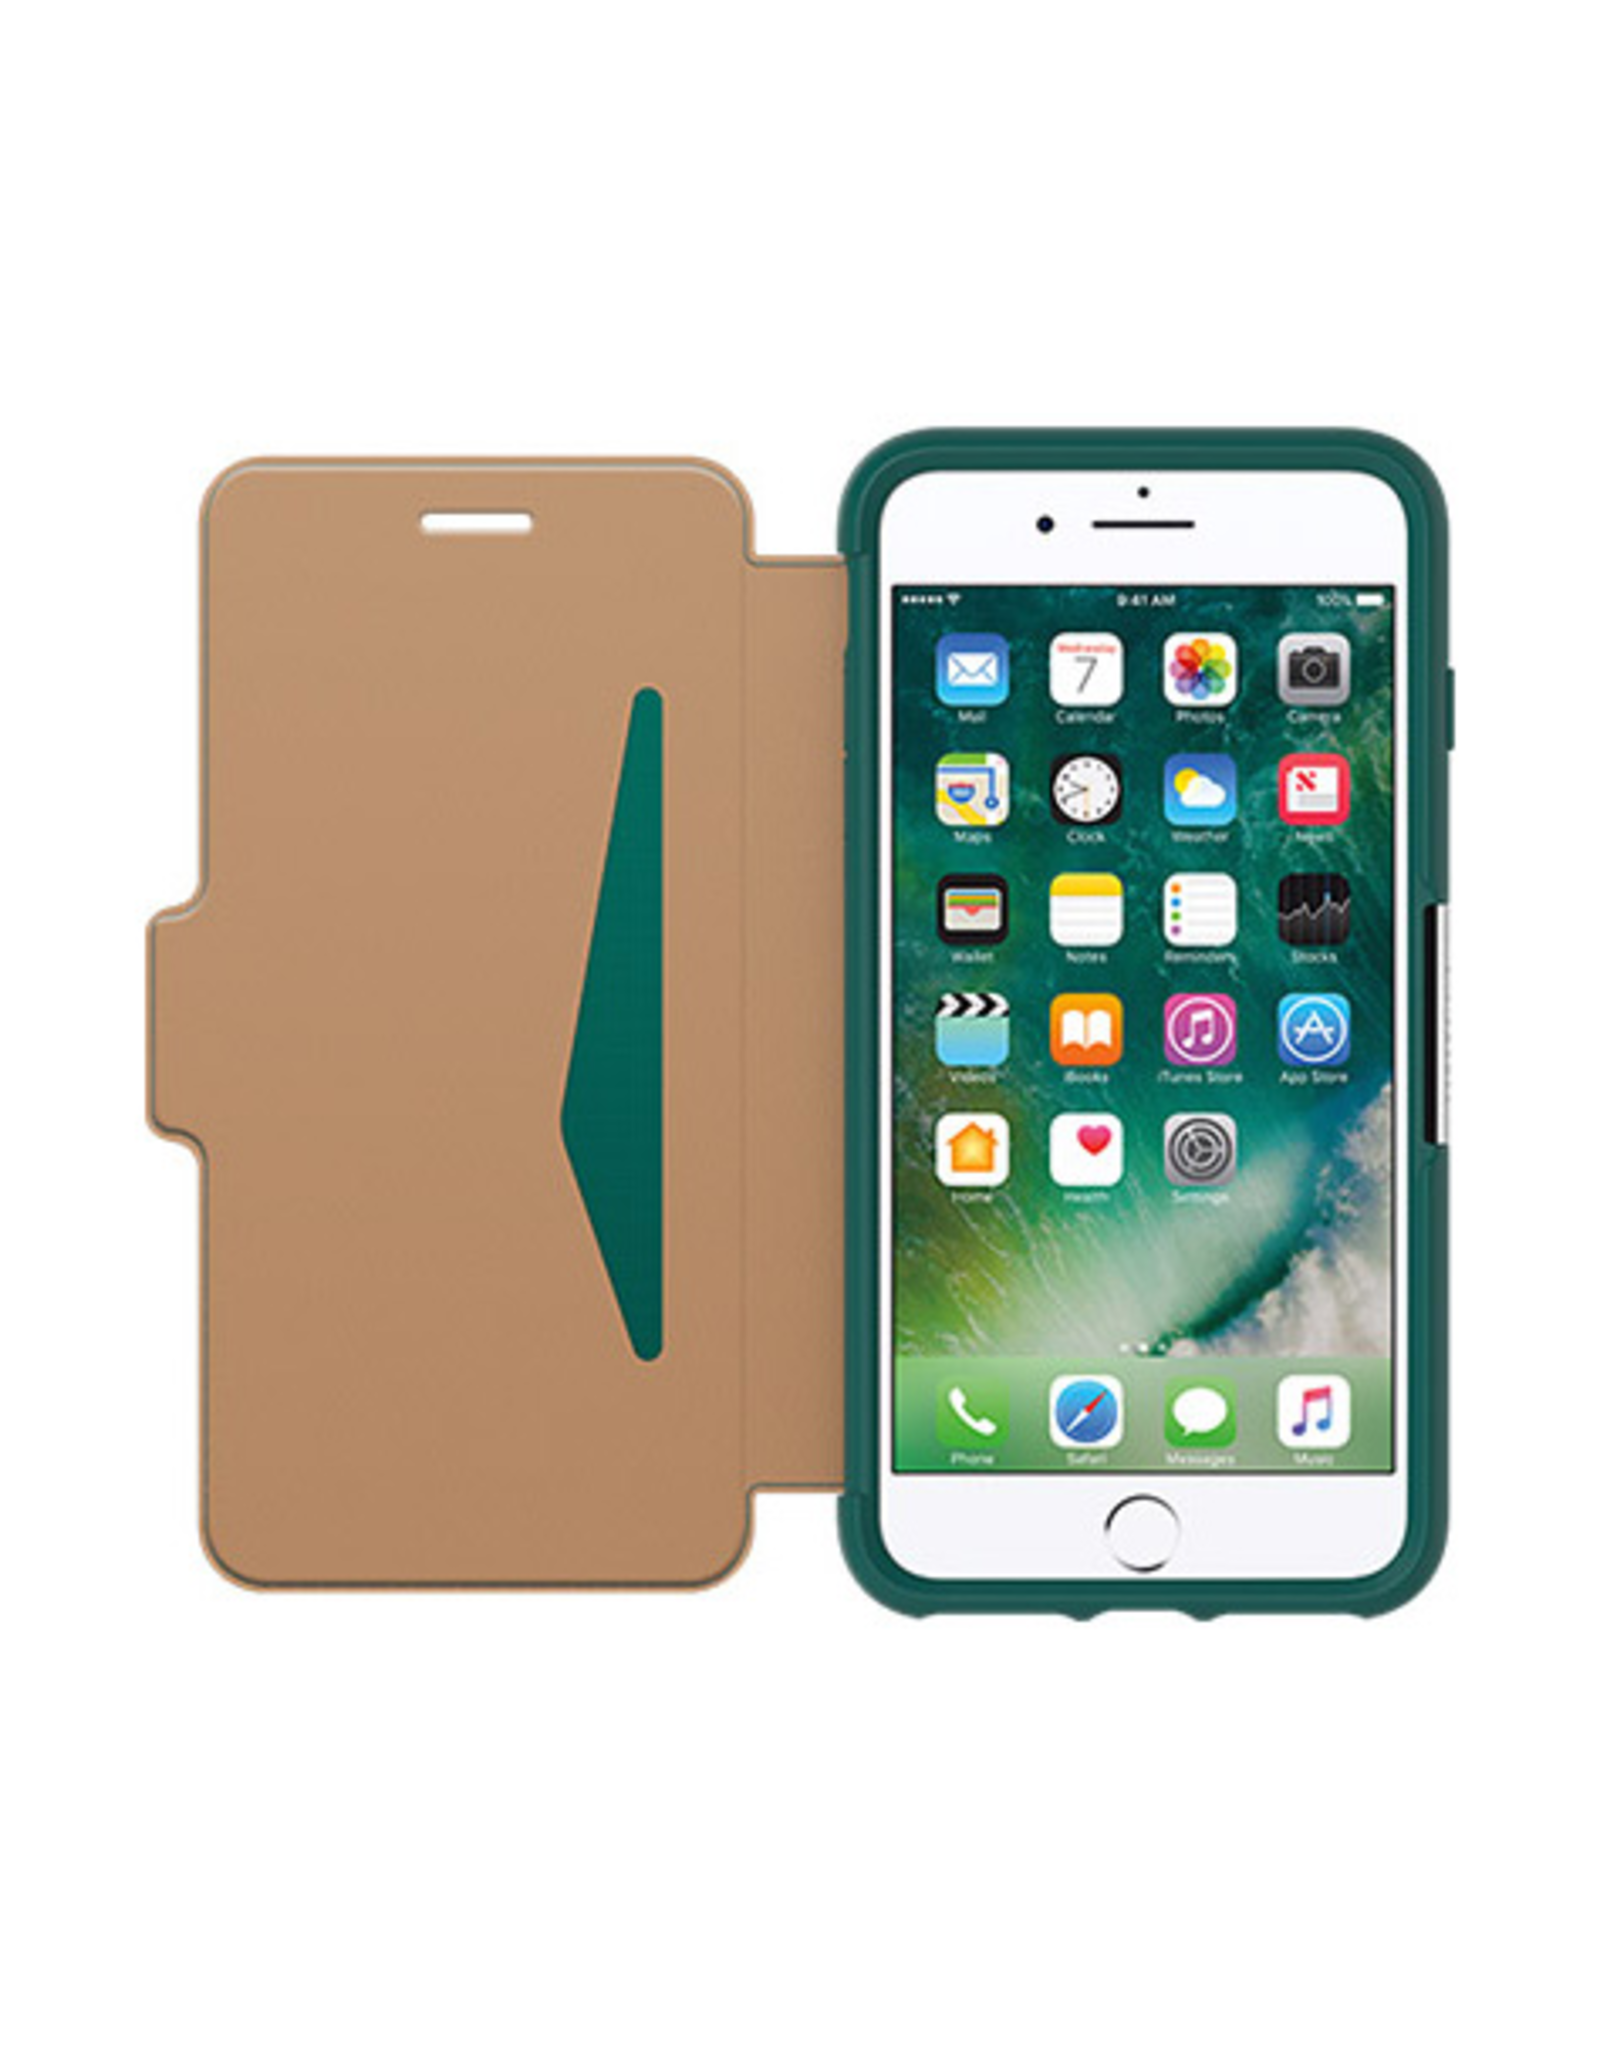 Otterbox OtterBox Strada Case suits iPhone 7 Plus/8 plus - Opal